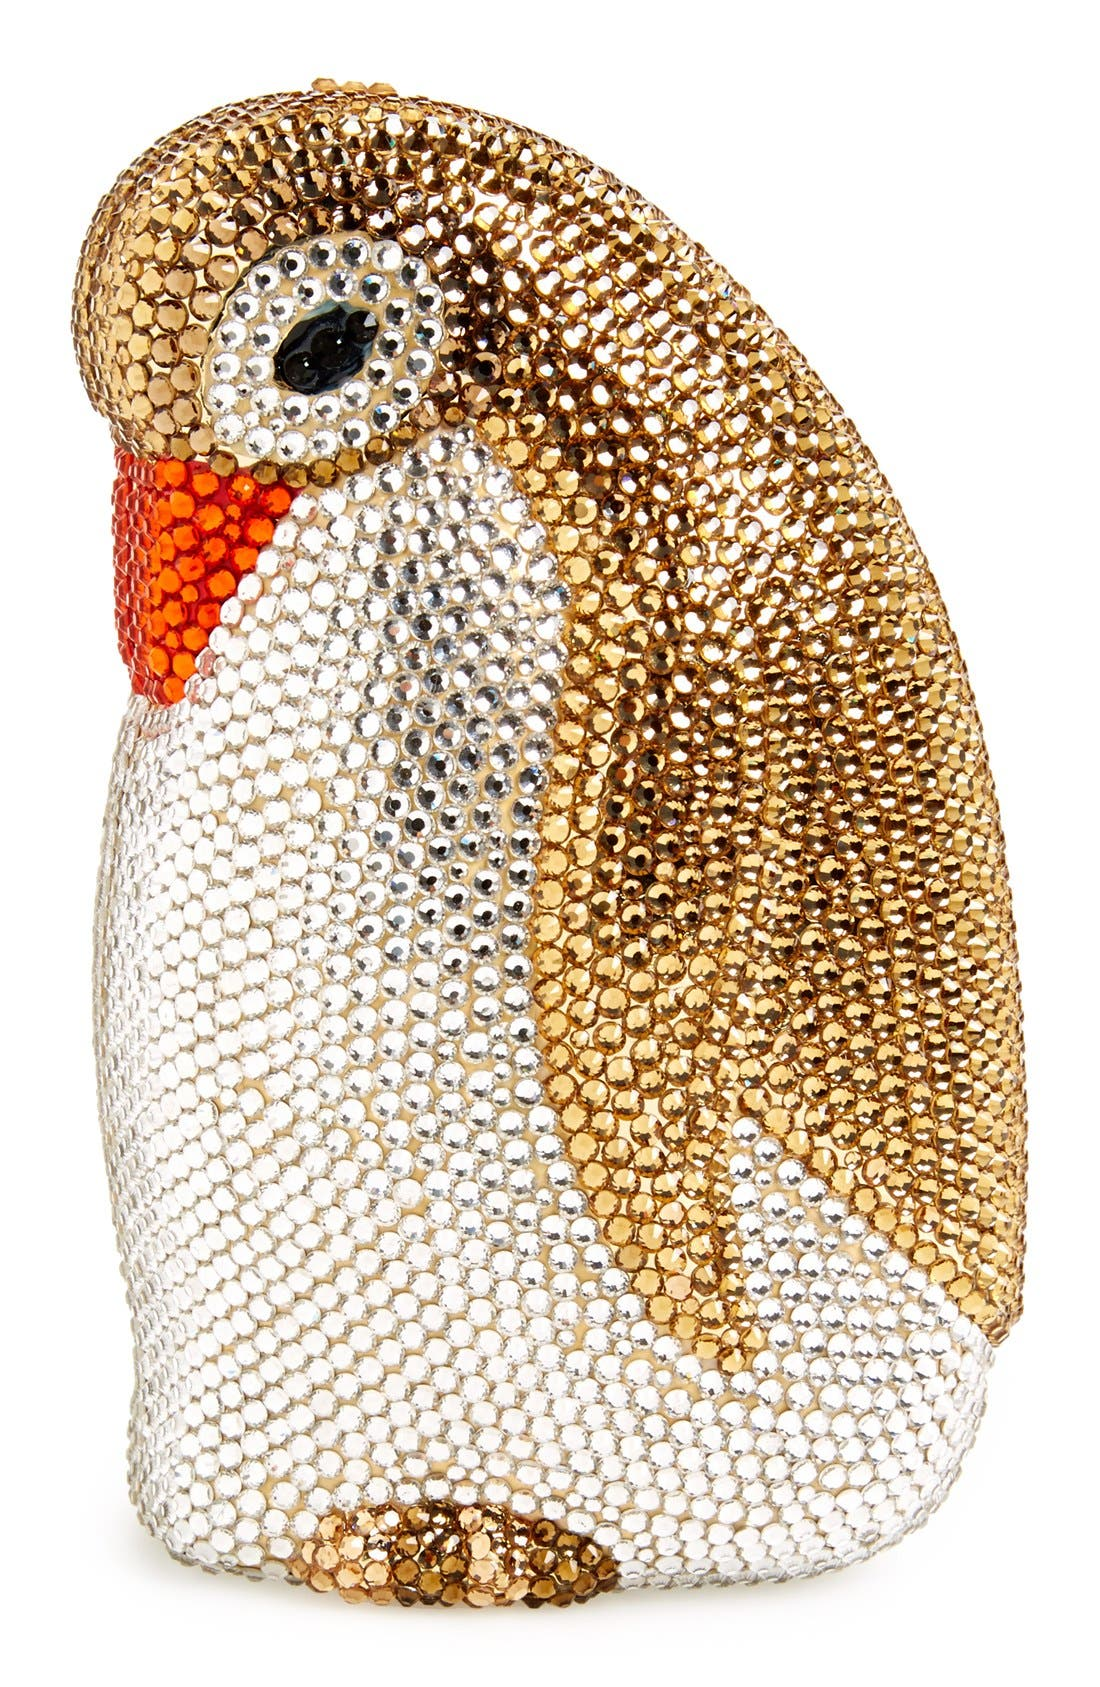 Alternate Image 1 Selected - Natasha Couture 'Penny The Penguin' Crystal Clutch